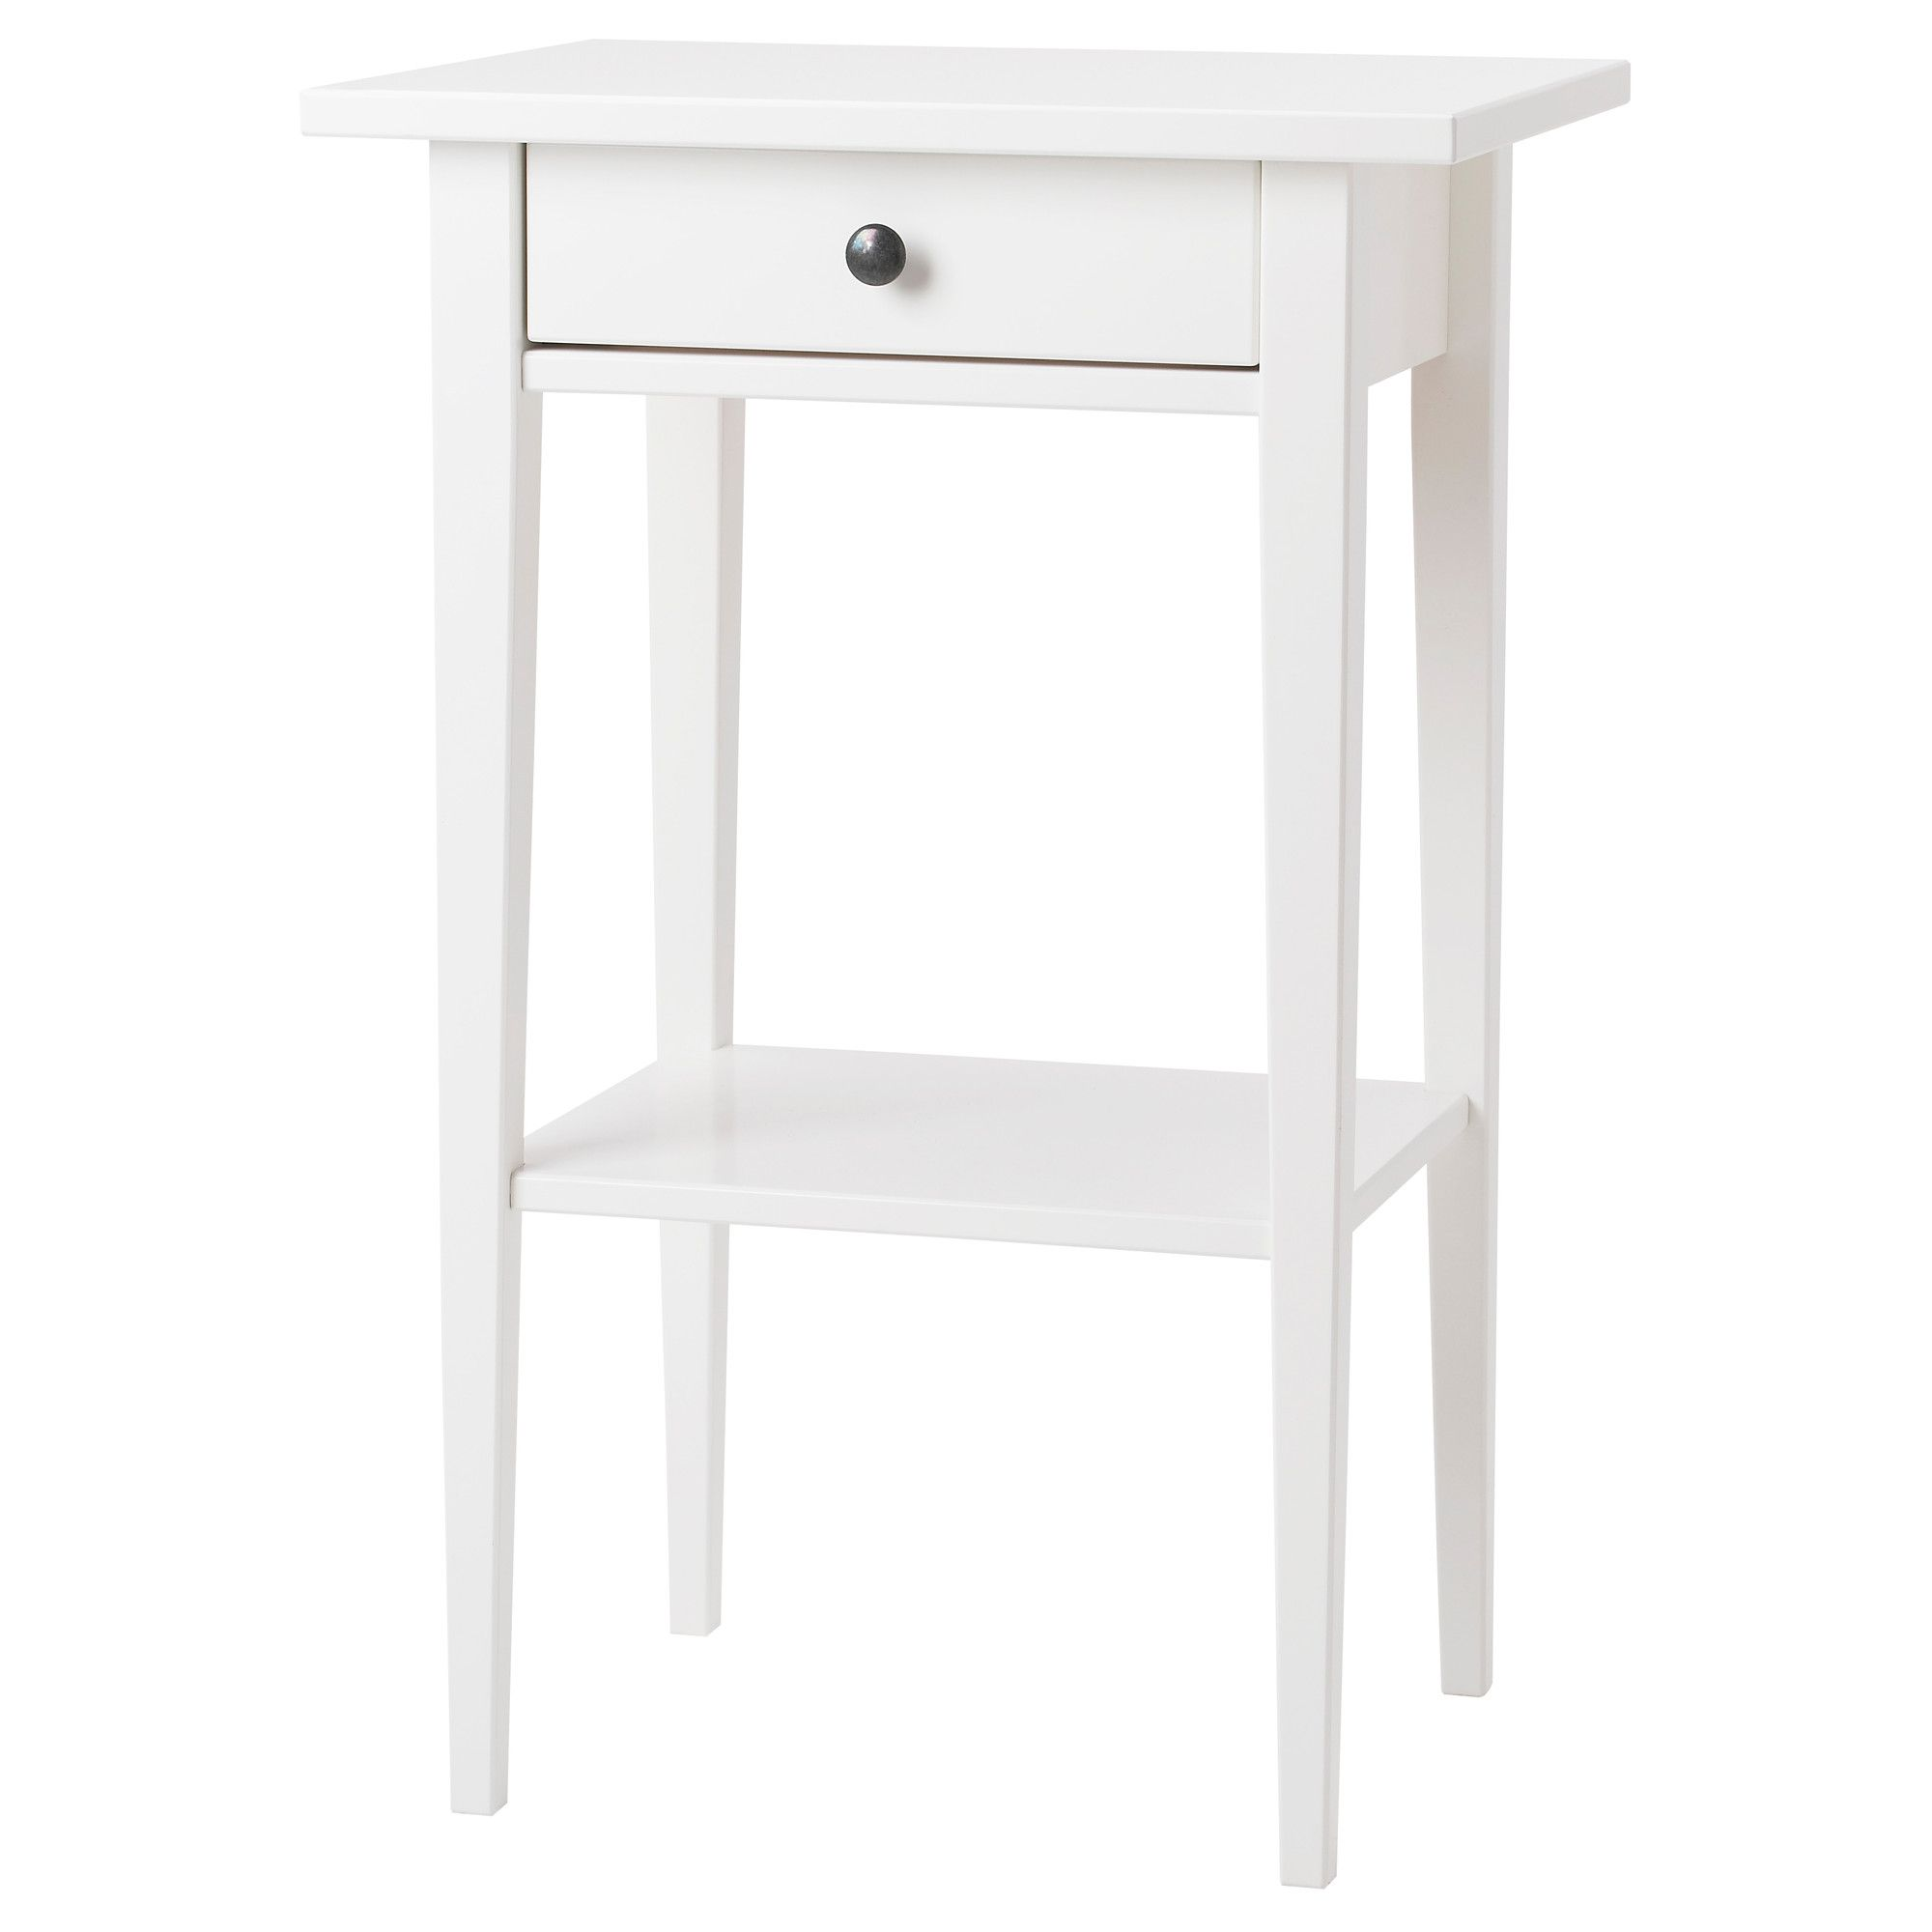 Ikea Us Furniture And Home Furnishings White Bedside Table Ikea Nightstand Hemnes Nightstand